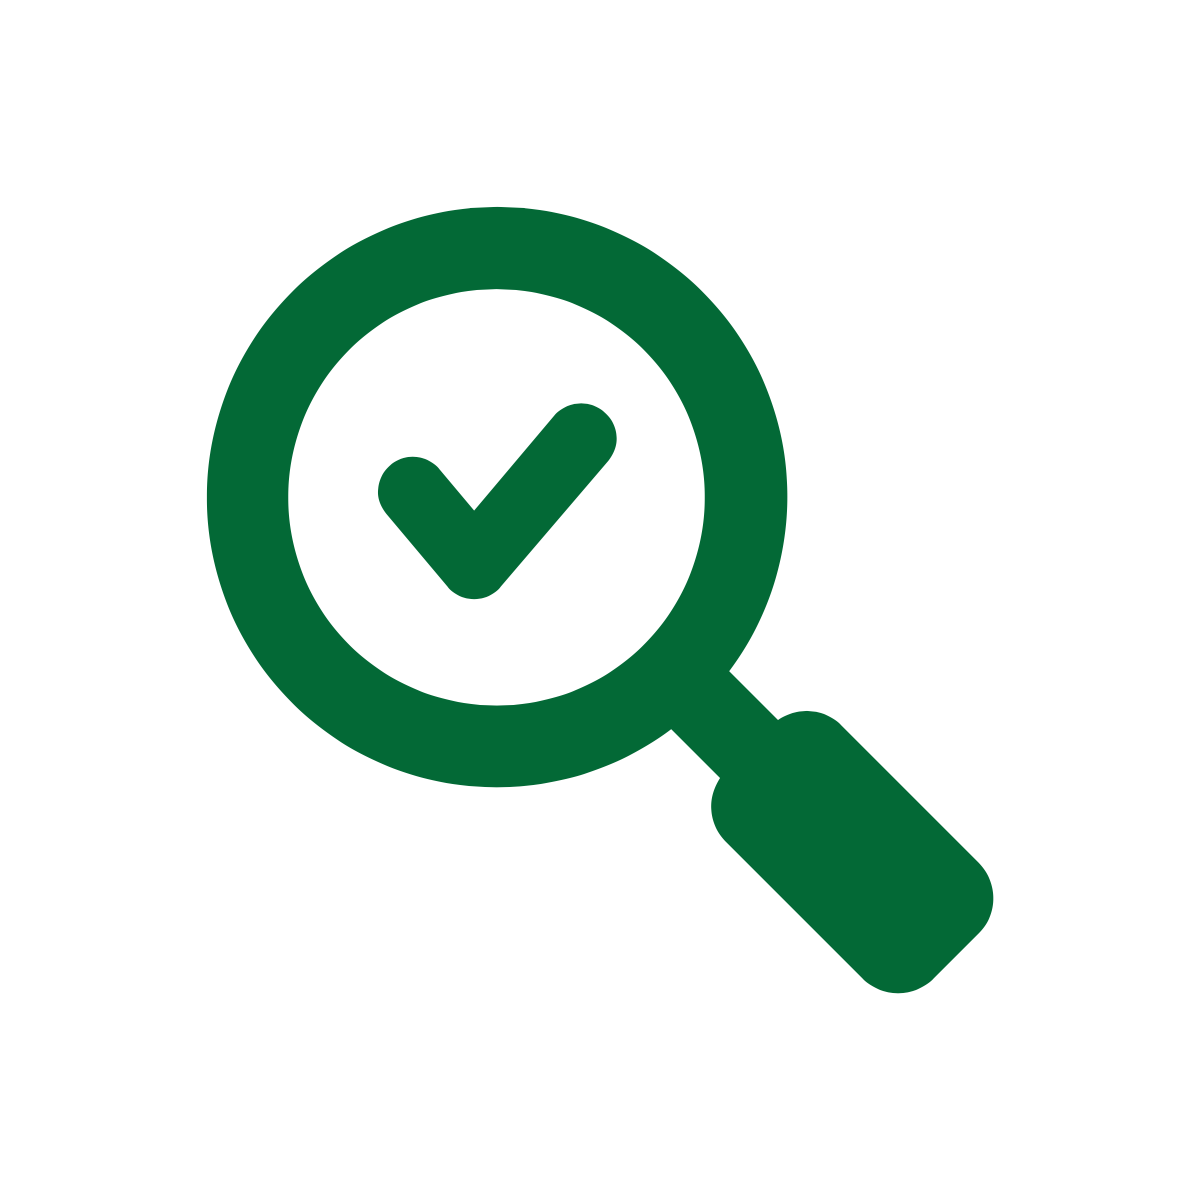 Green magnifying glass icon with checkmark inside from Noun Project